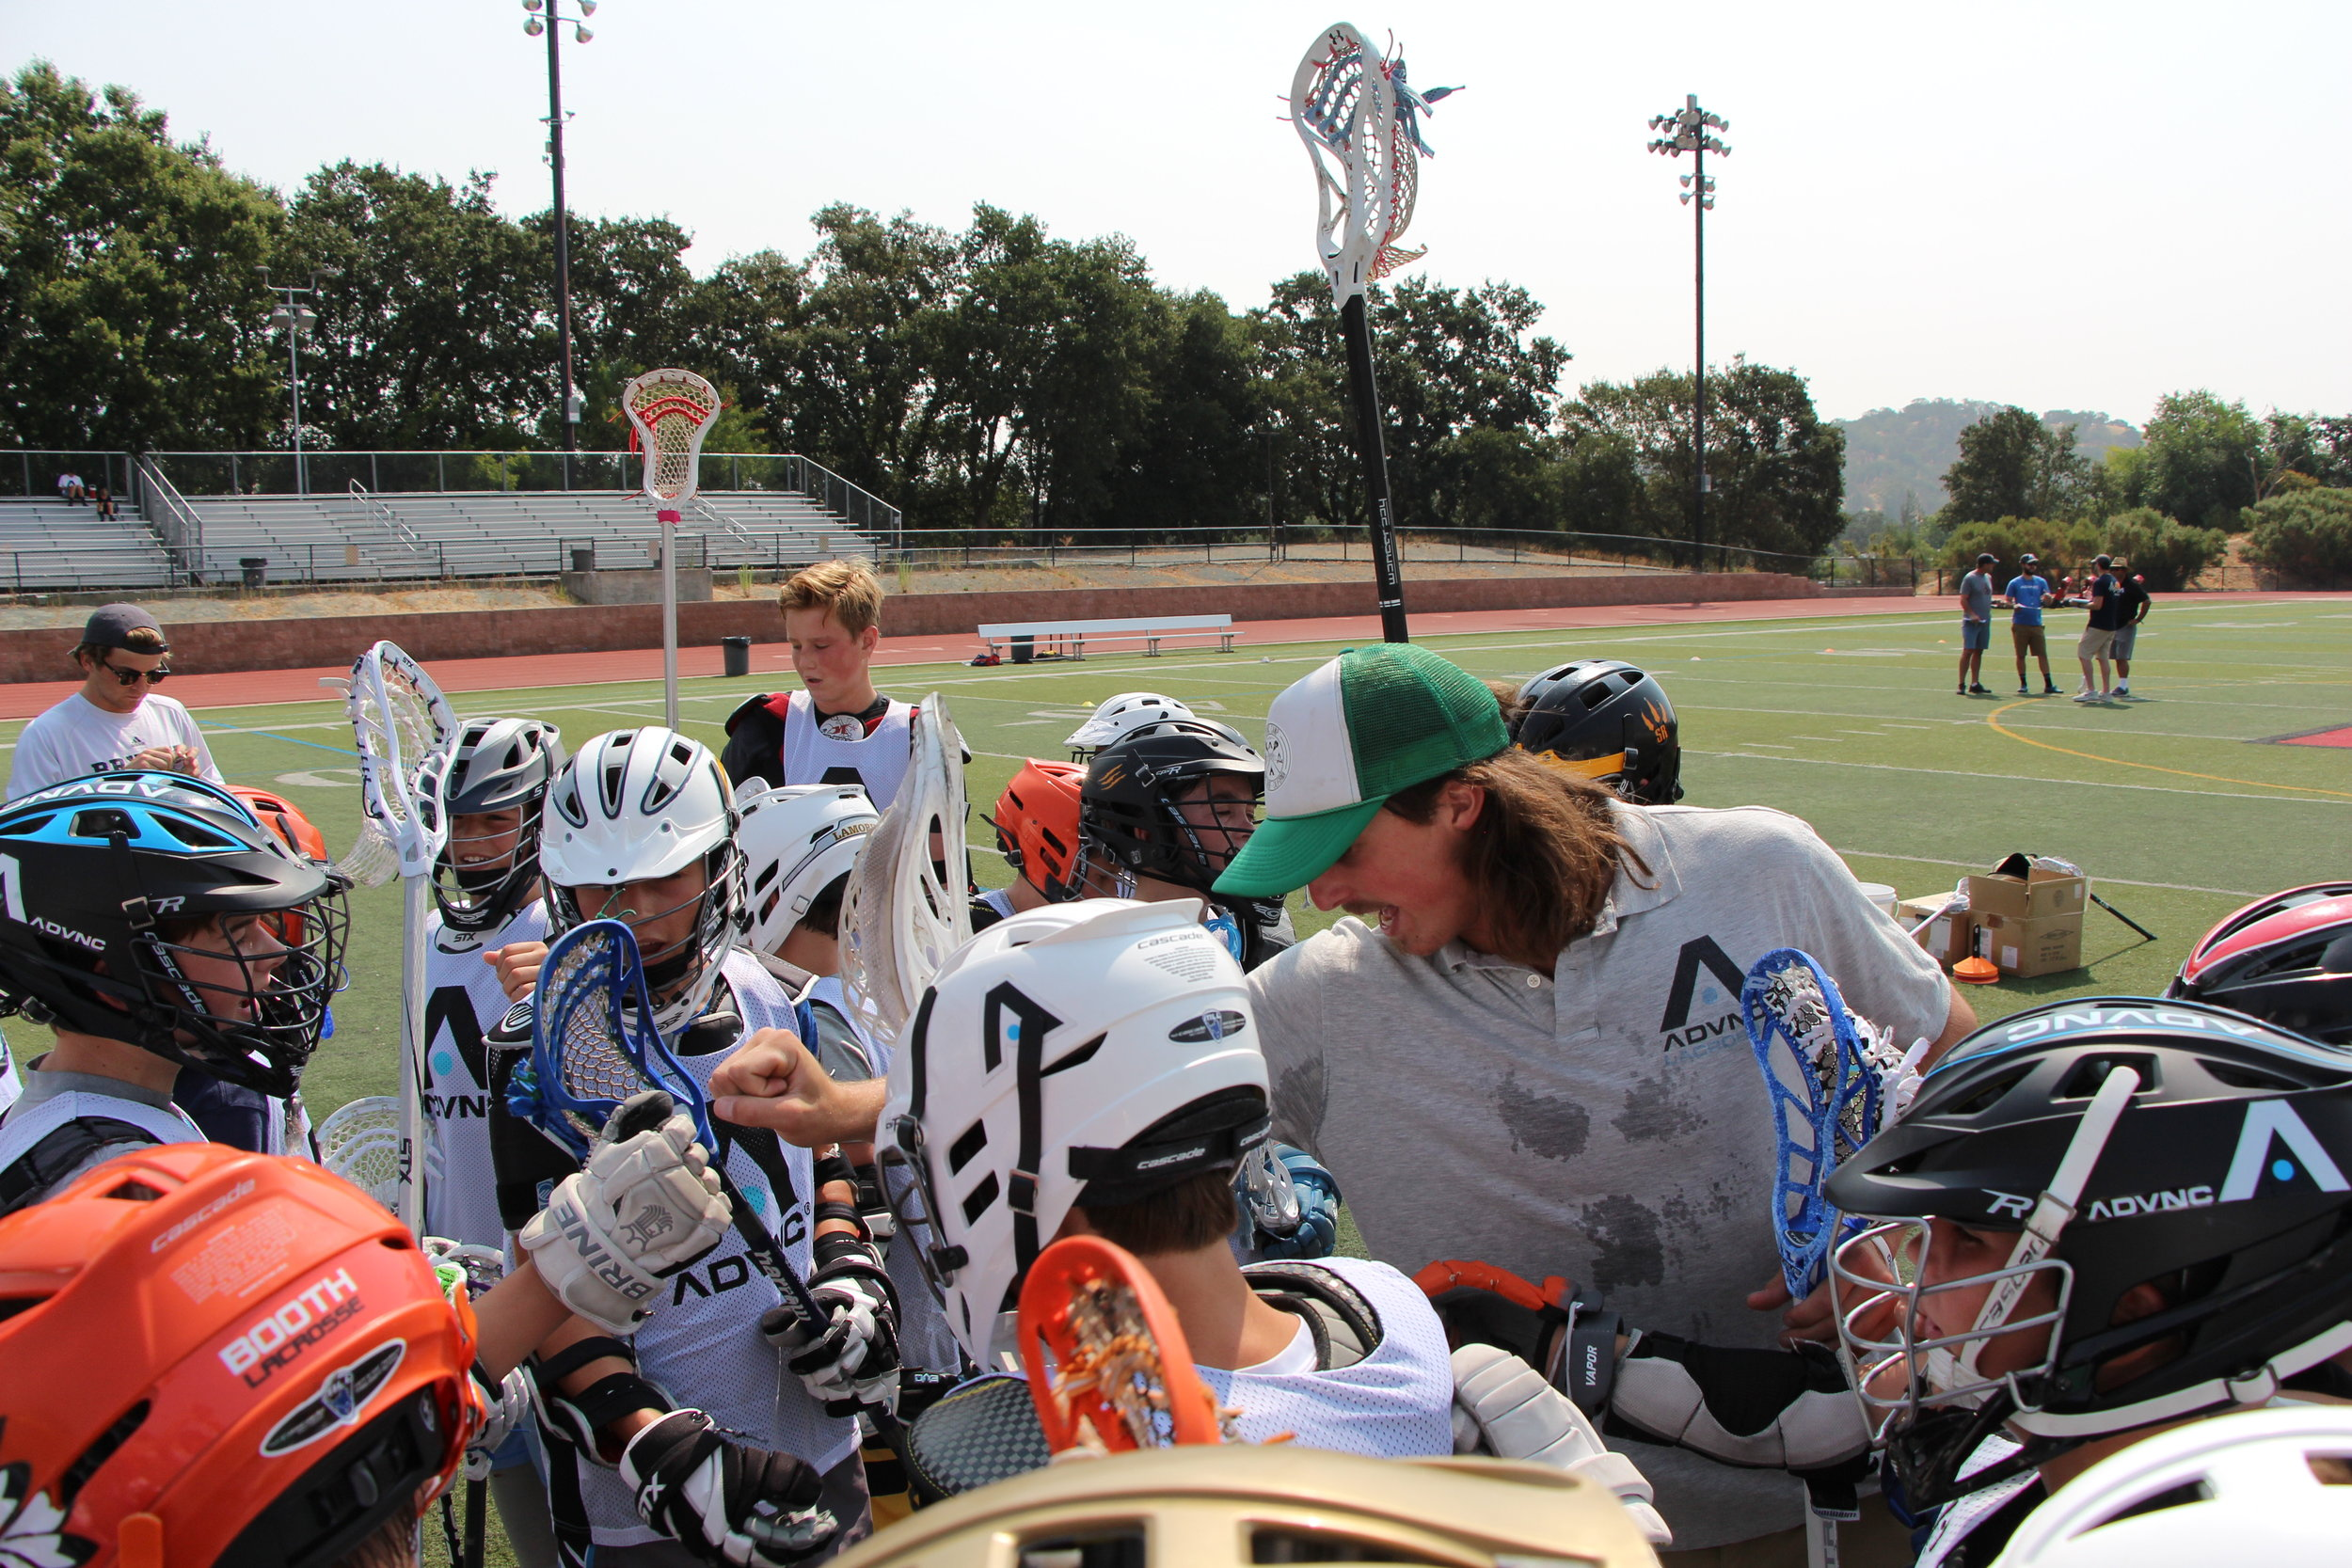 Former ADVNC Player, Current MLL Champ, and Current ADVNC Tahoe Region Director, Mikie Schlosser brings a wealth of knowledge & passion to the field